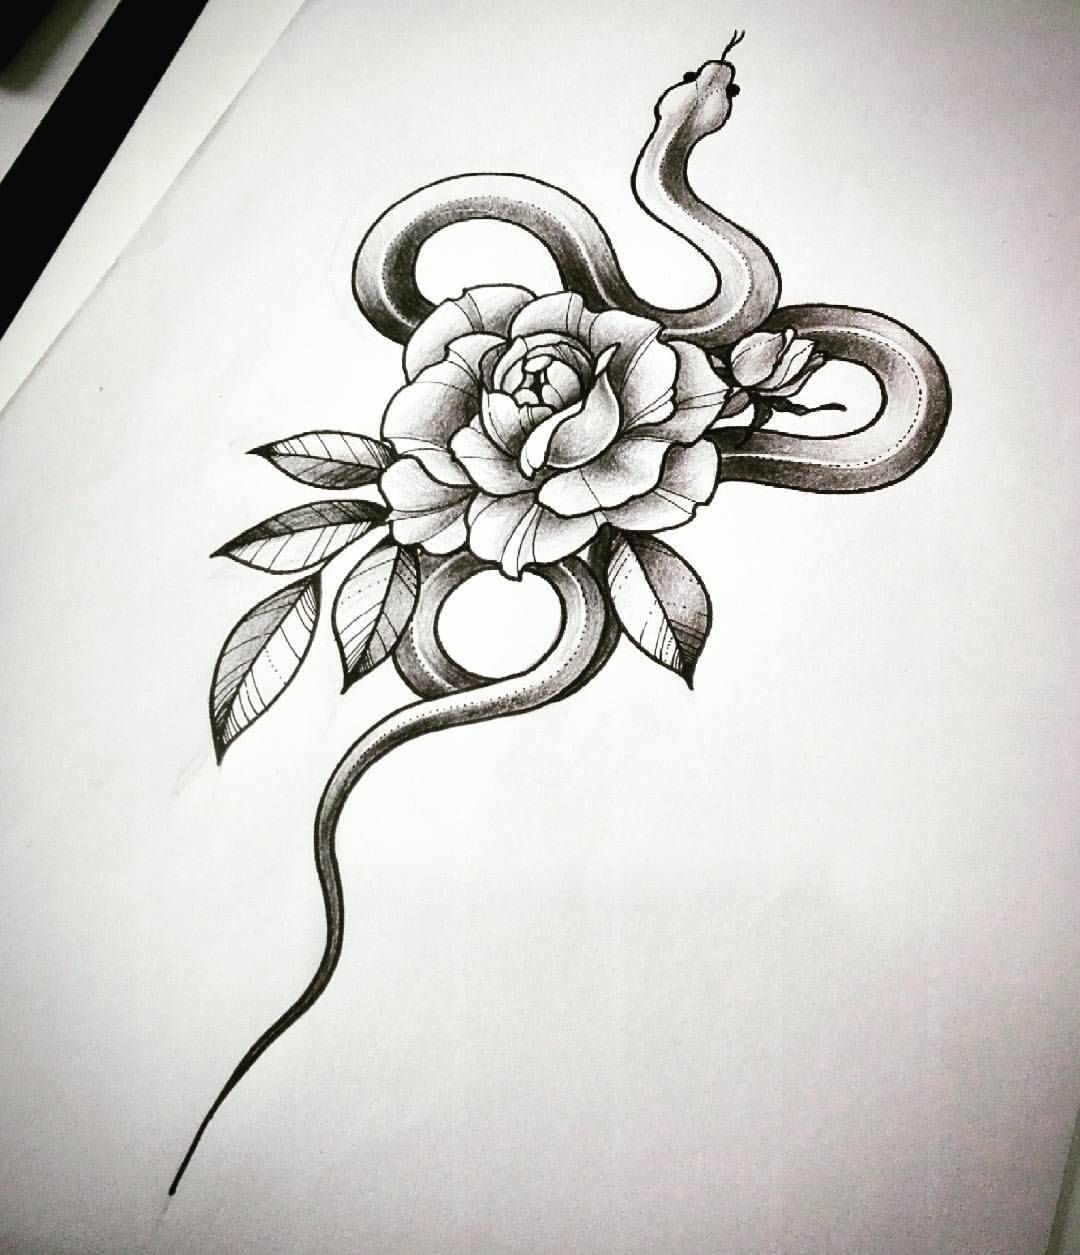 "Laura Zuffo on Instagram: ""#drawing #drawingfortattoo #sketch #snake #snakesketch #rose #roseandsnake #roseandsnaketattoo #snakeandflowers #snakeandrose…"""